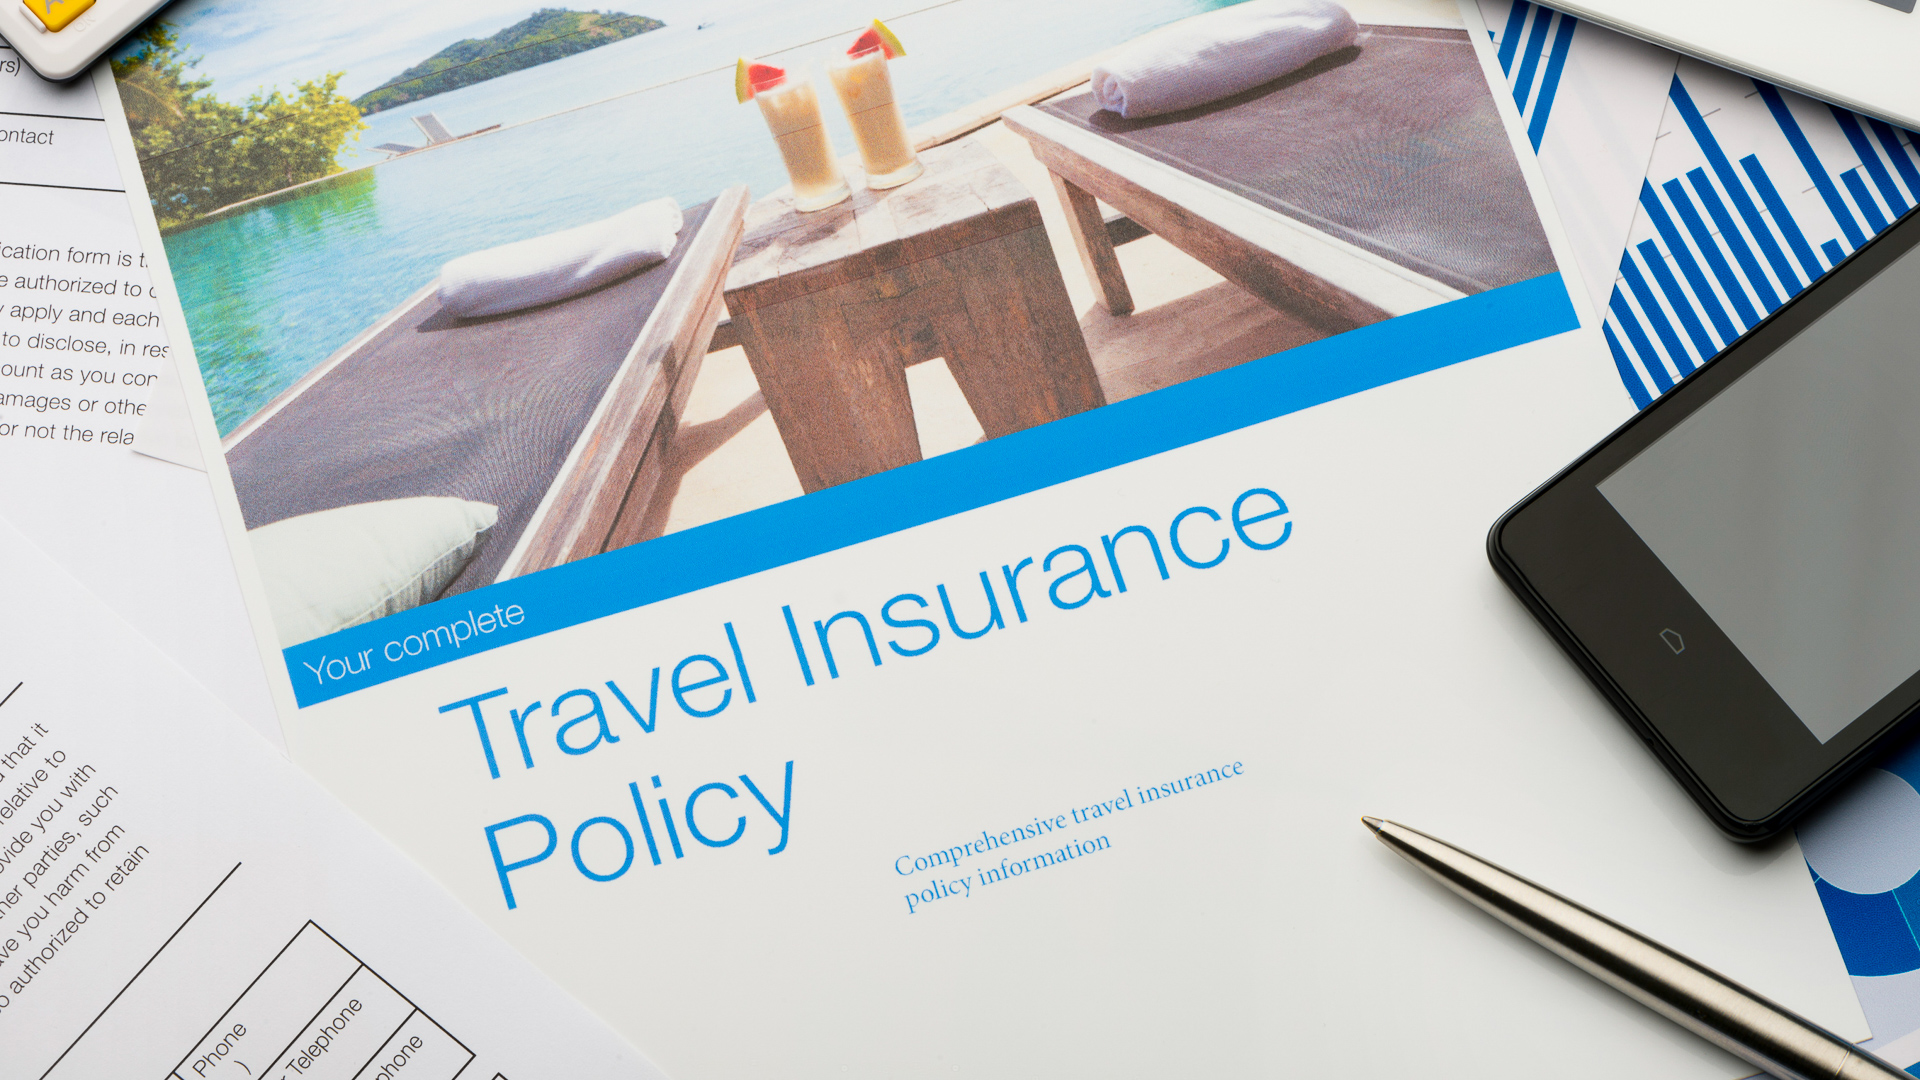 Travel insurance policy document with paperwork and technology.